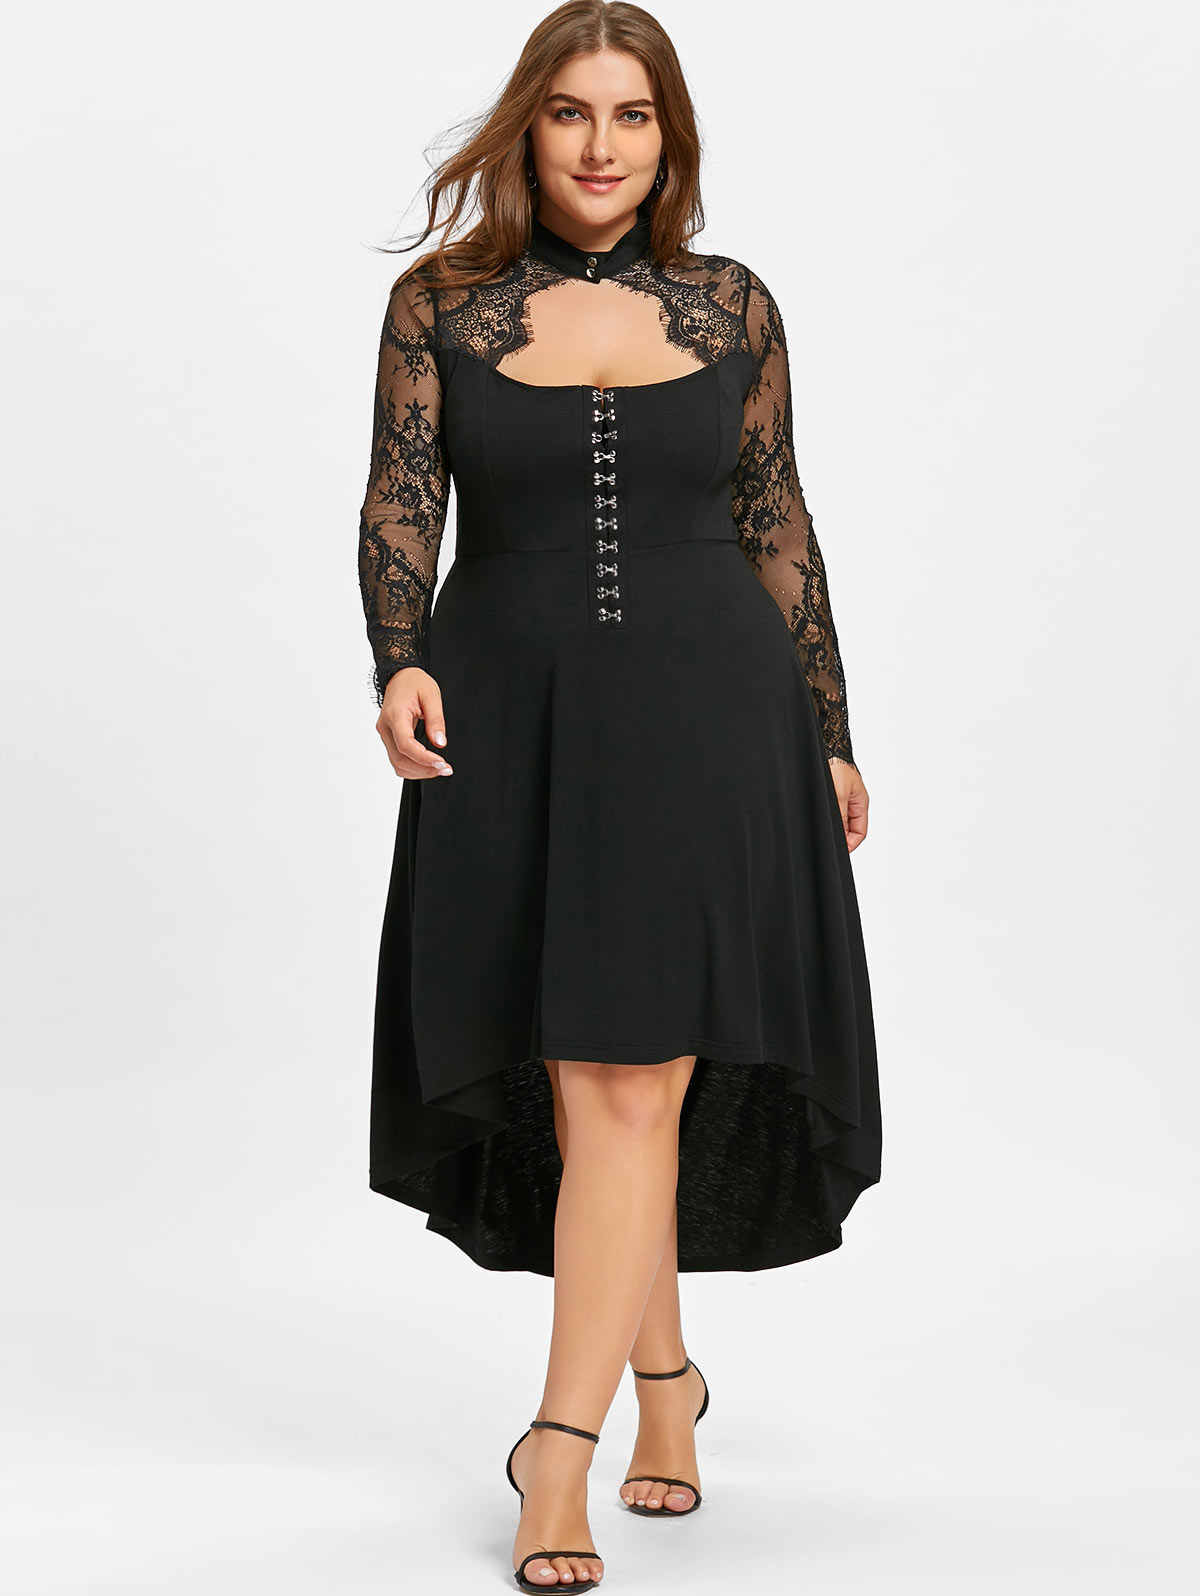 Wipalo Women Spring Lace Up Dip Hem Keyhole Dress Gothic Mock Neck Long Sleeves Party Elegant Dresses Vestidos Plus Size XL-5XL